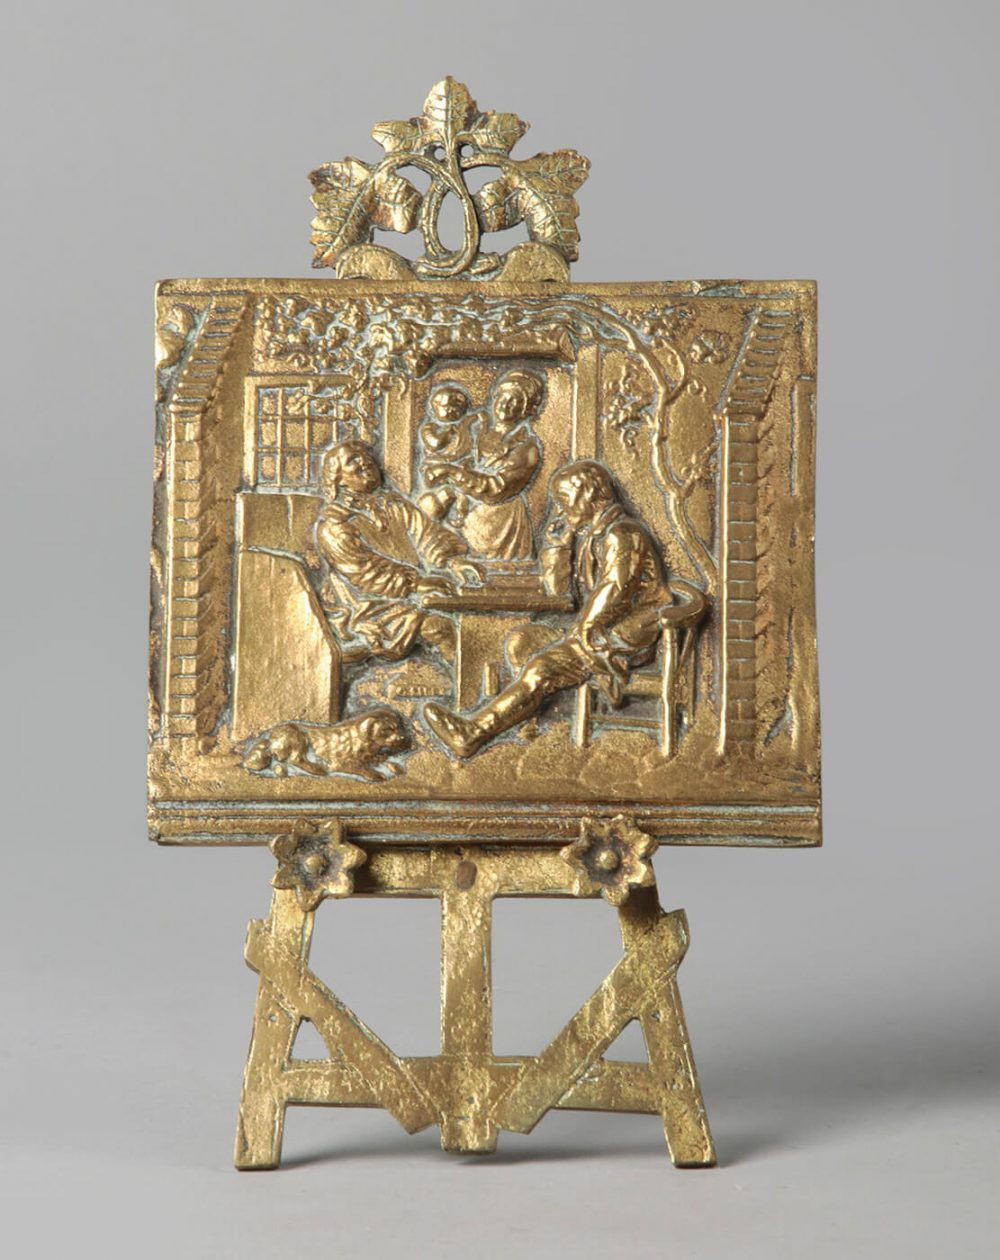 Miniature easel with painting bronze Renaissance style